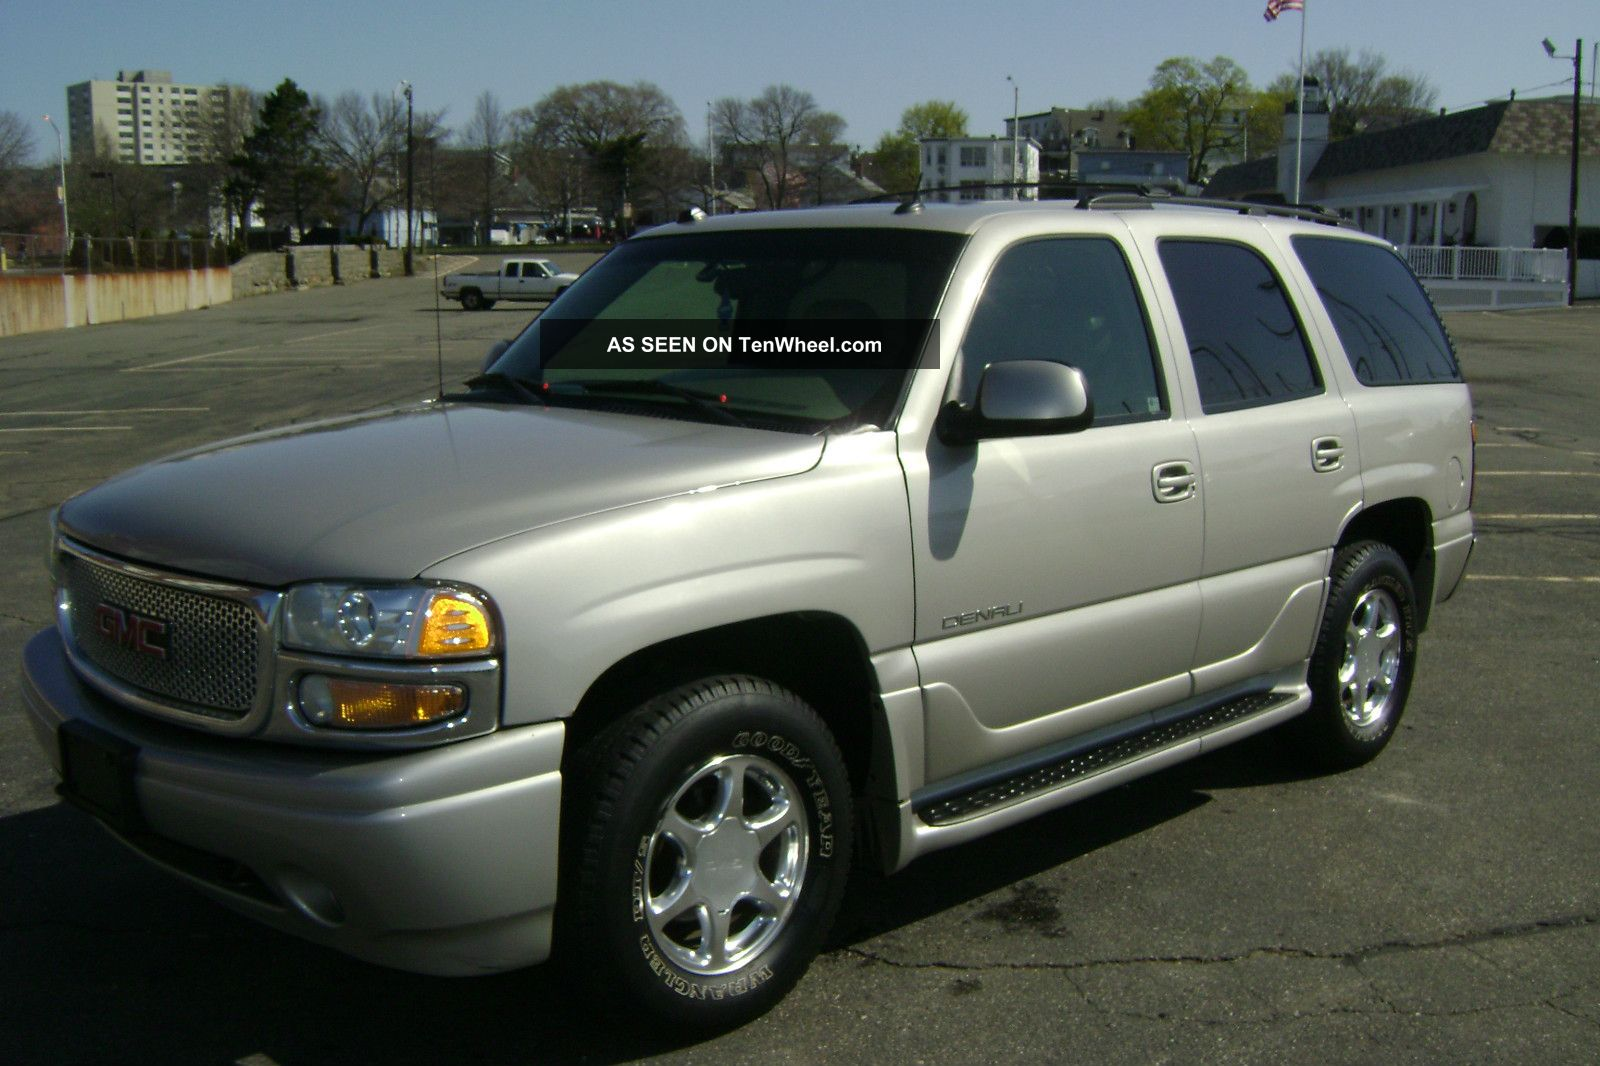 2004 gmc yukon denali 6 0l vortec v8 auto awd 3rd row seating. Black Bedroom Furniture Sets. Home Design Ideas